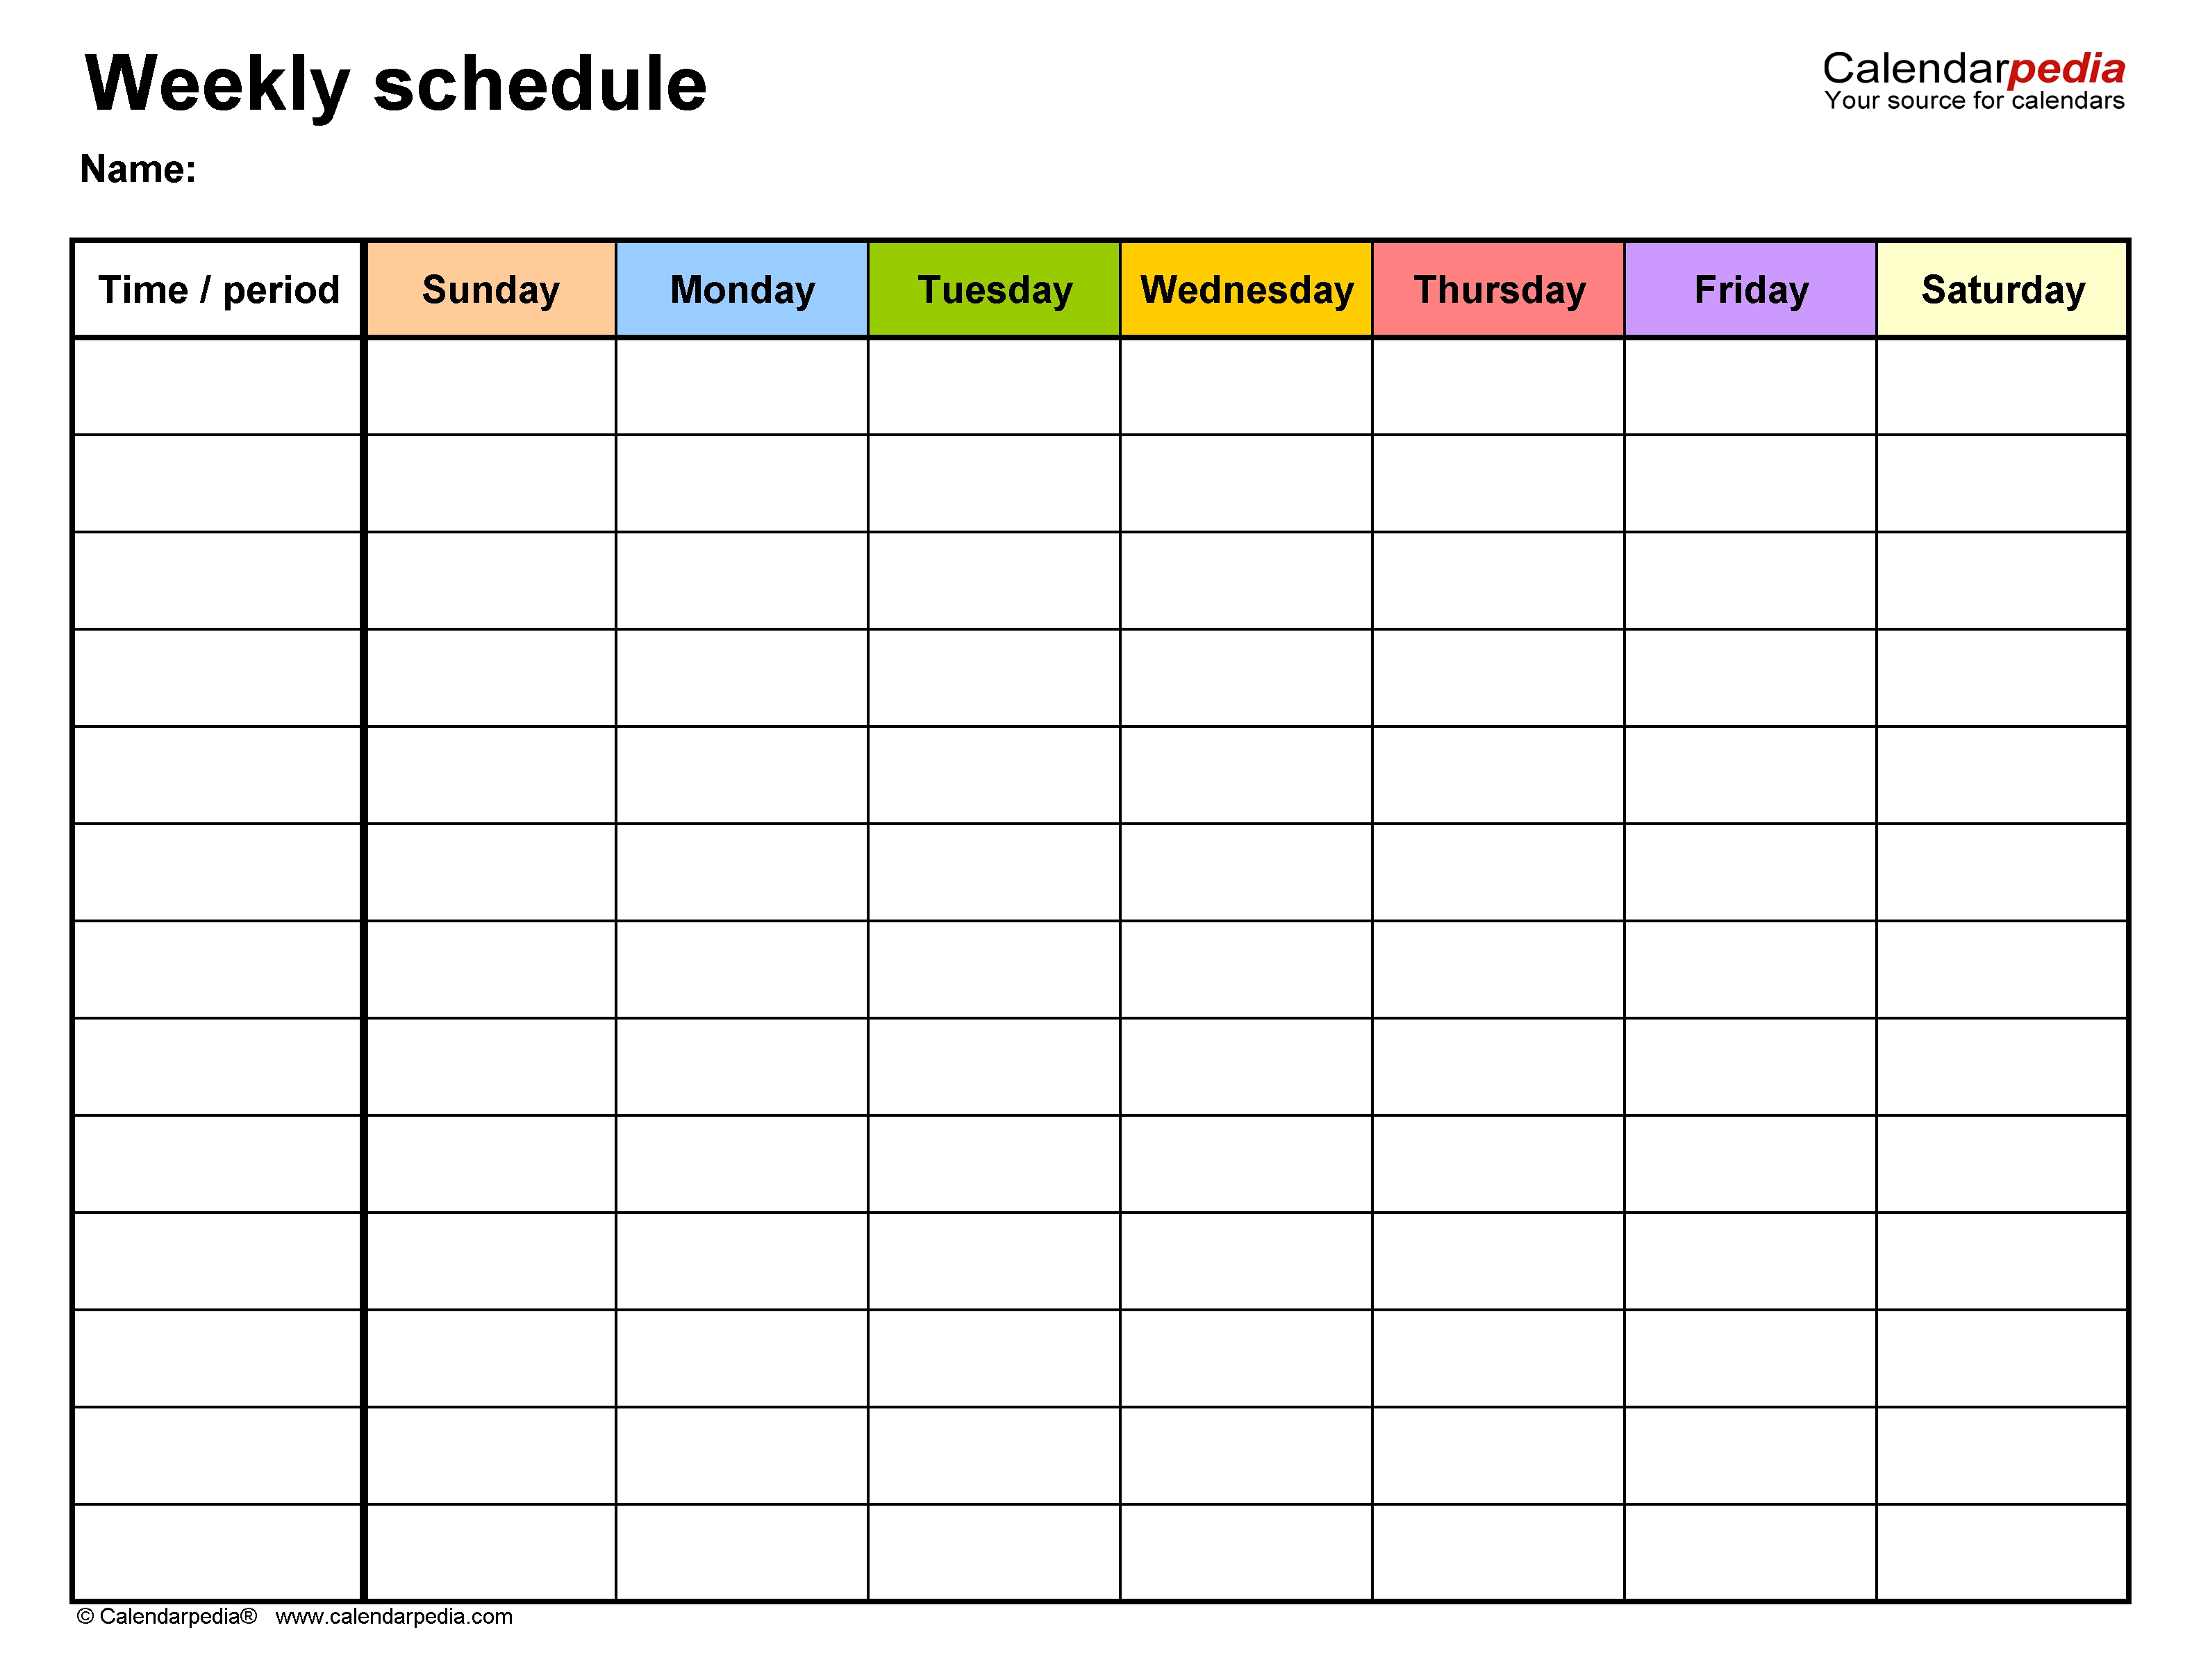 Free Weekly Schedule Templates For Word - 18 Templates-Seven Day Calendar Schedule Template